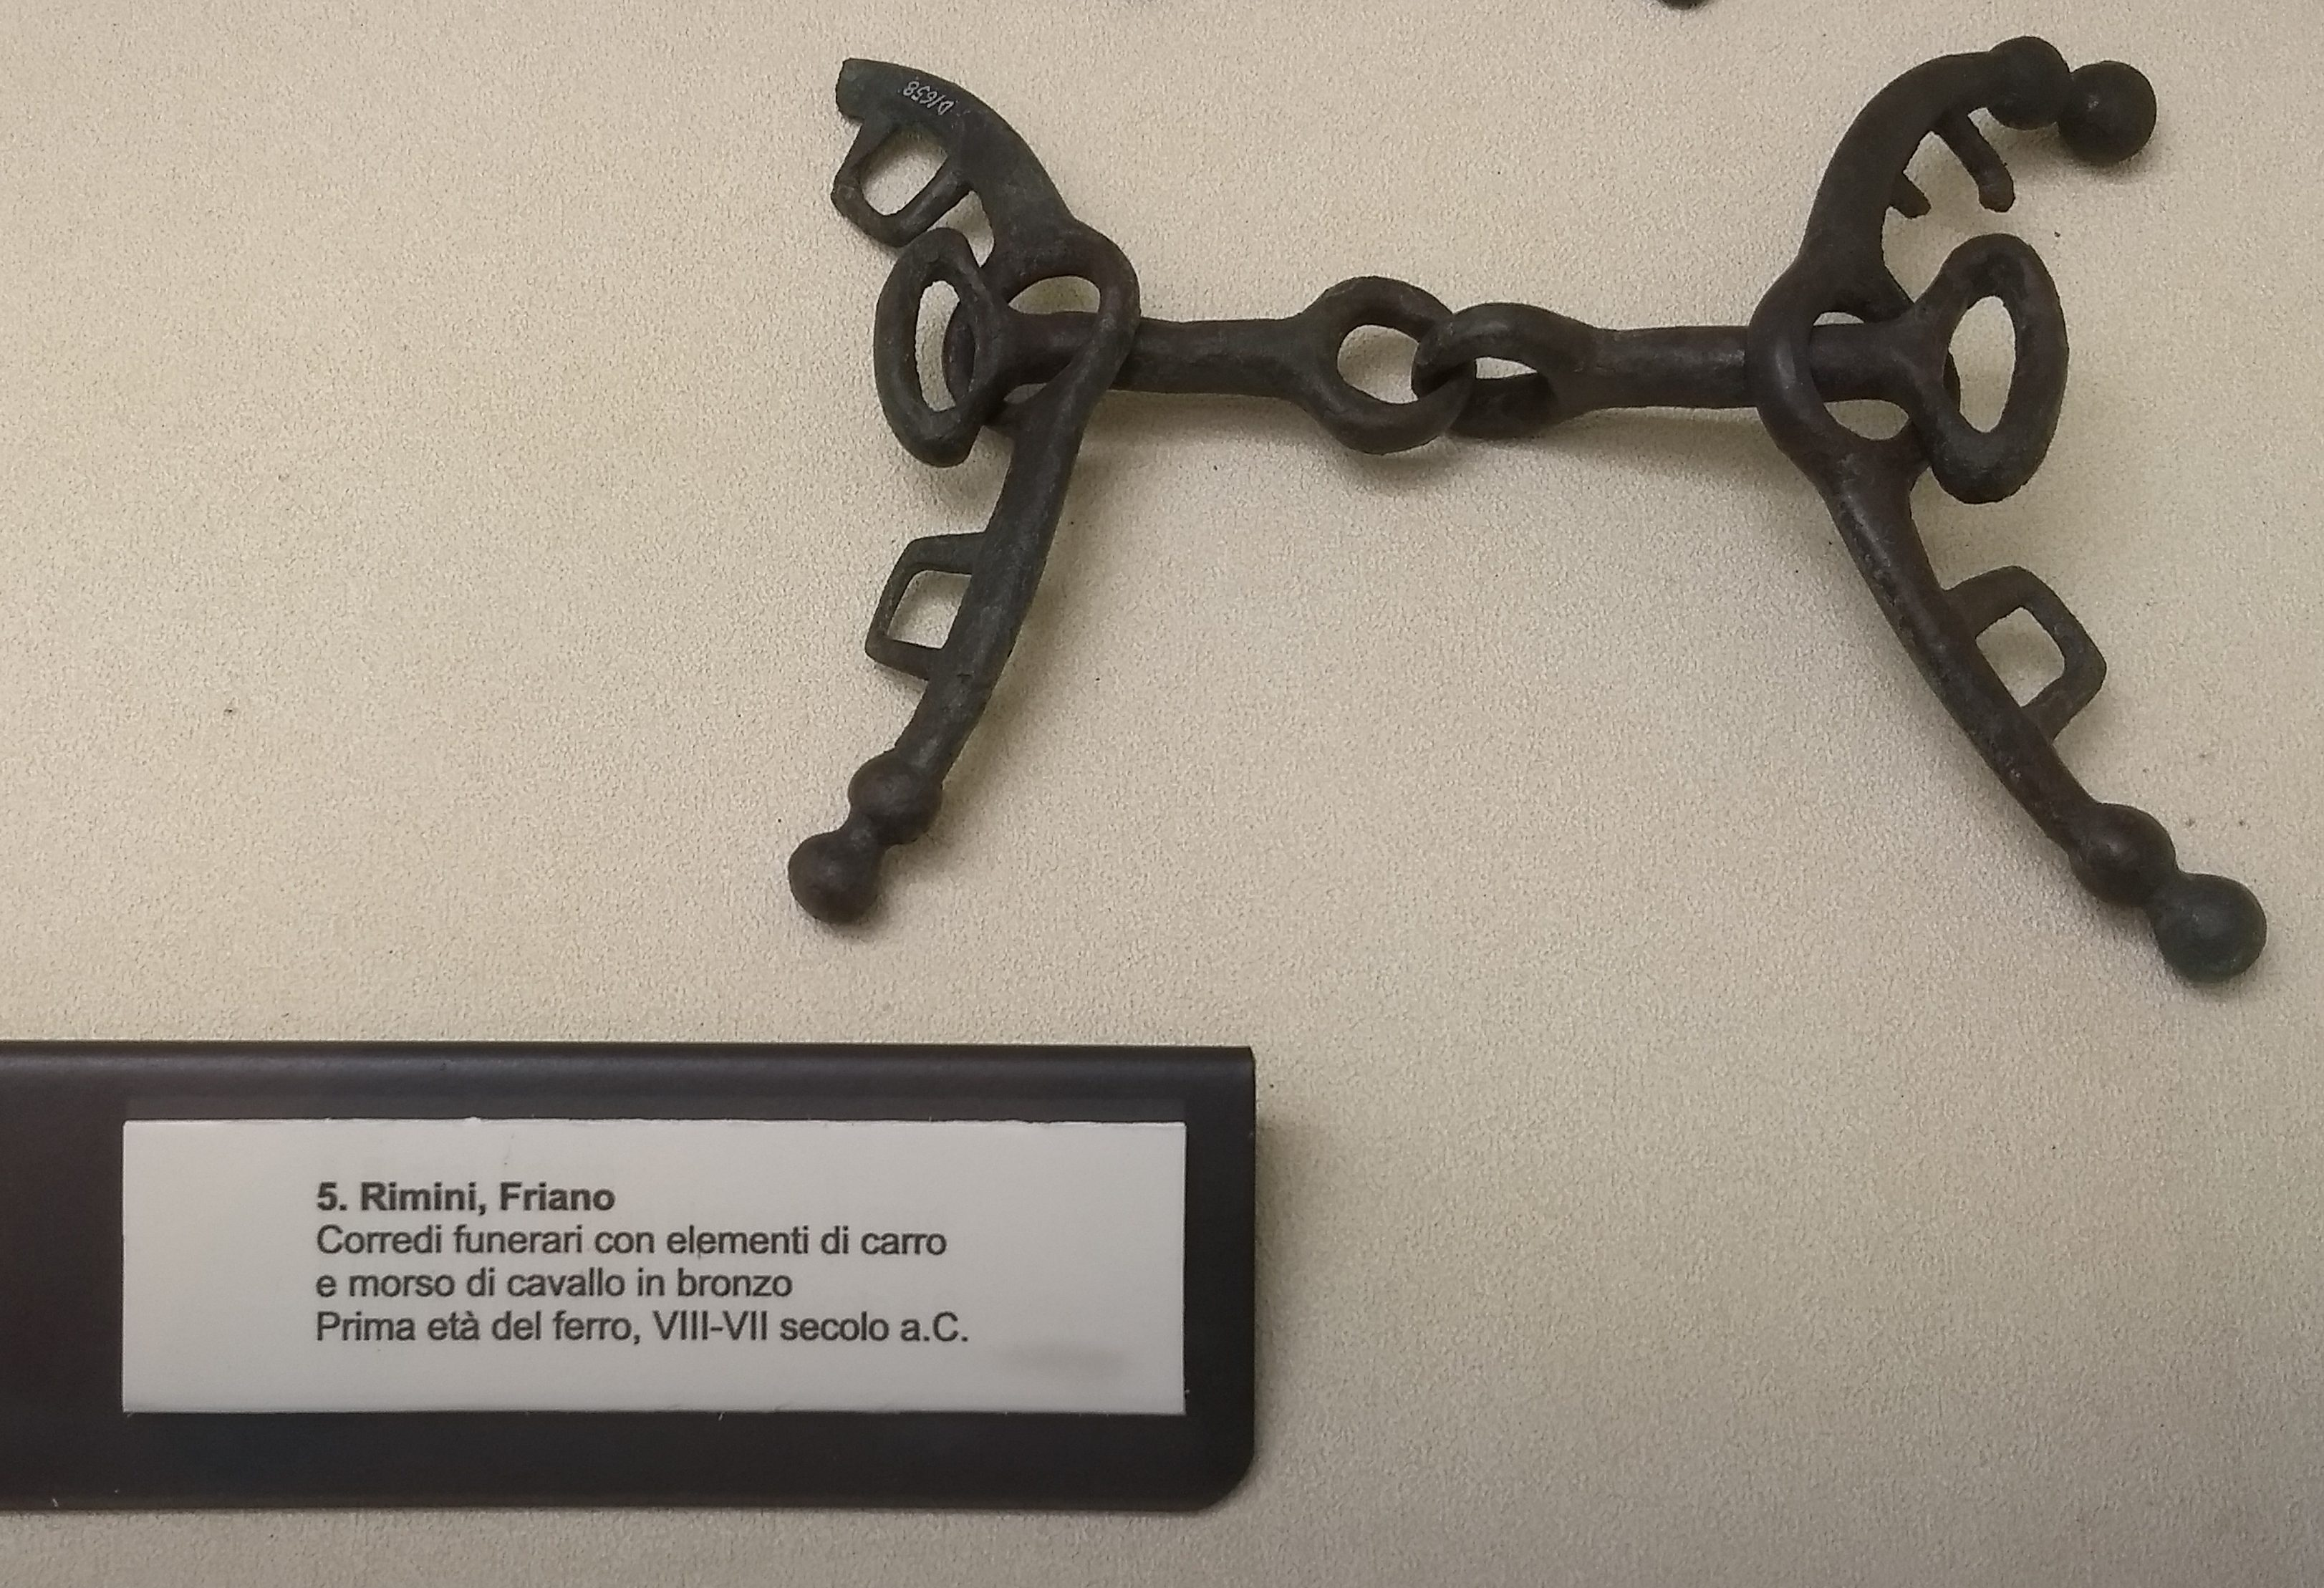 A four-part bronze horse bit, aggressively cleaned and patinad, in a museum display case